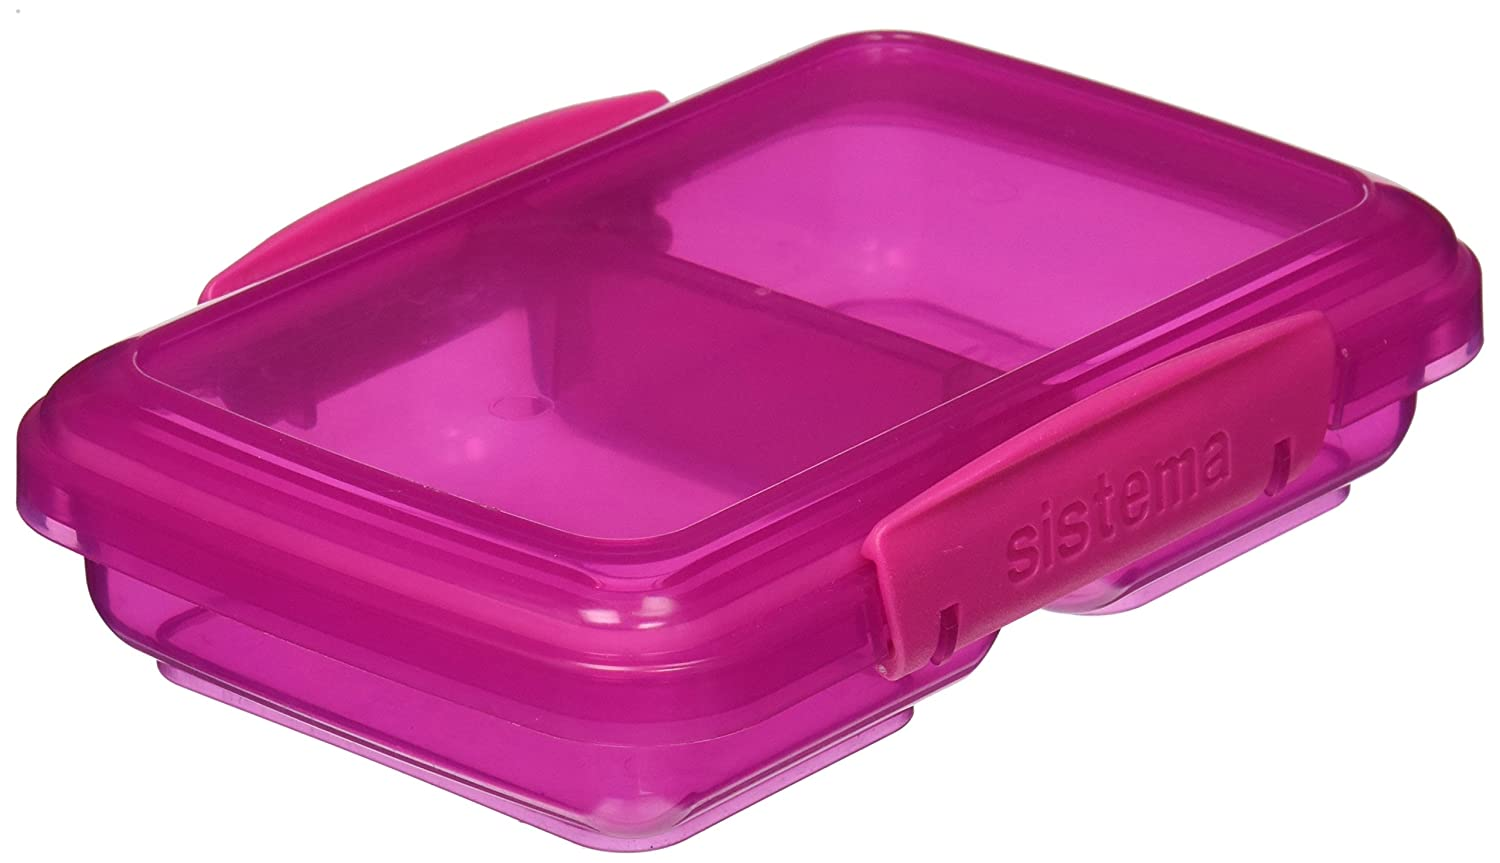 Sistema Lunch Collection Split Food Storage Containers, 1.5 Cup, Set of 3 in Assorted Colors 1514